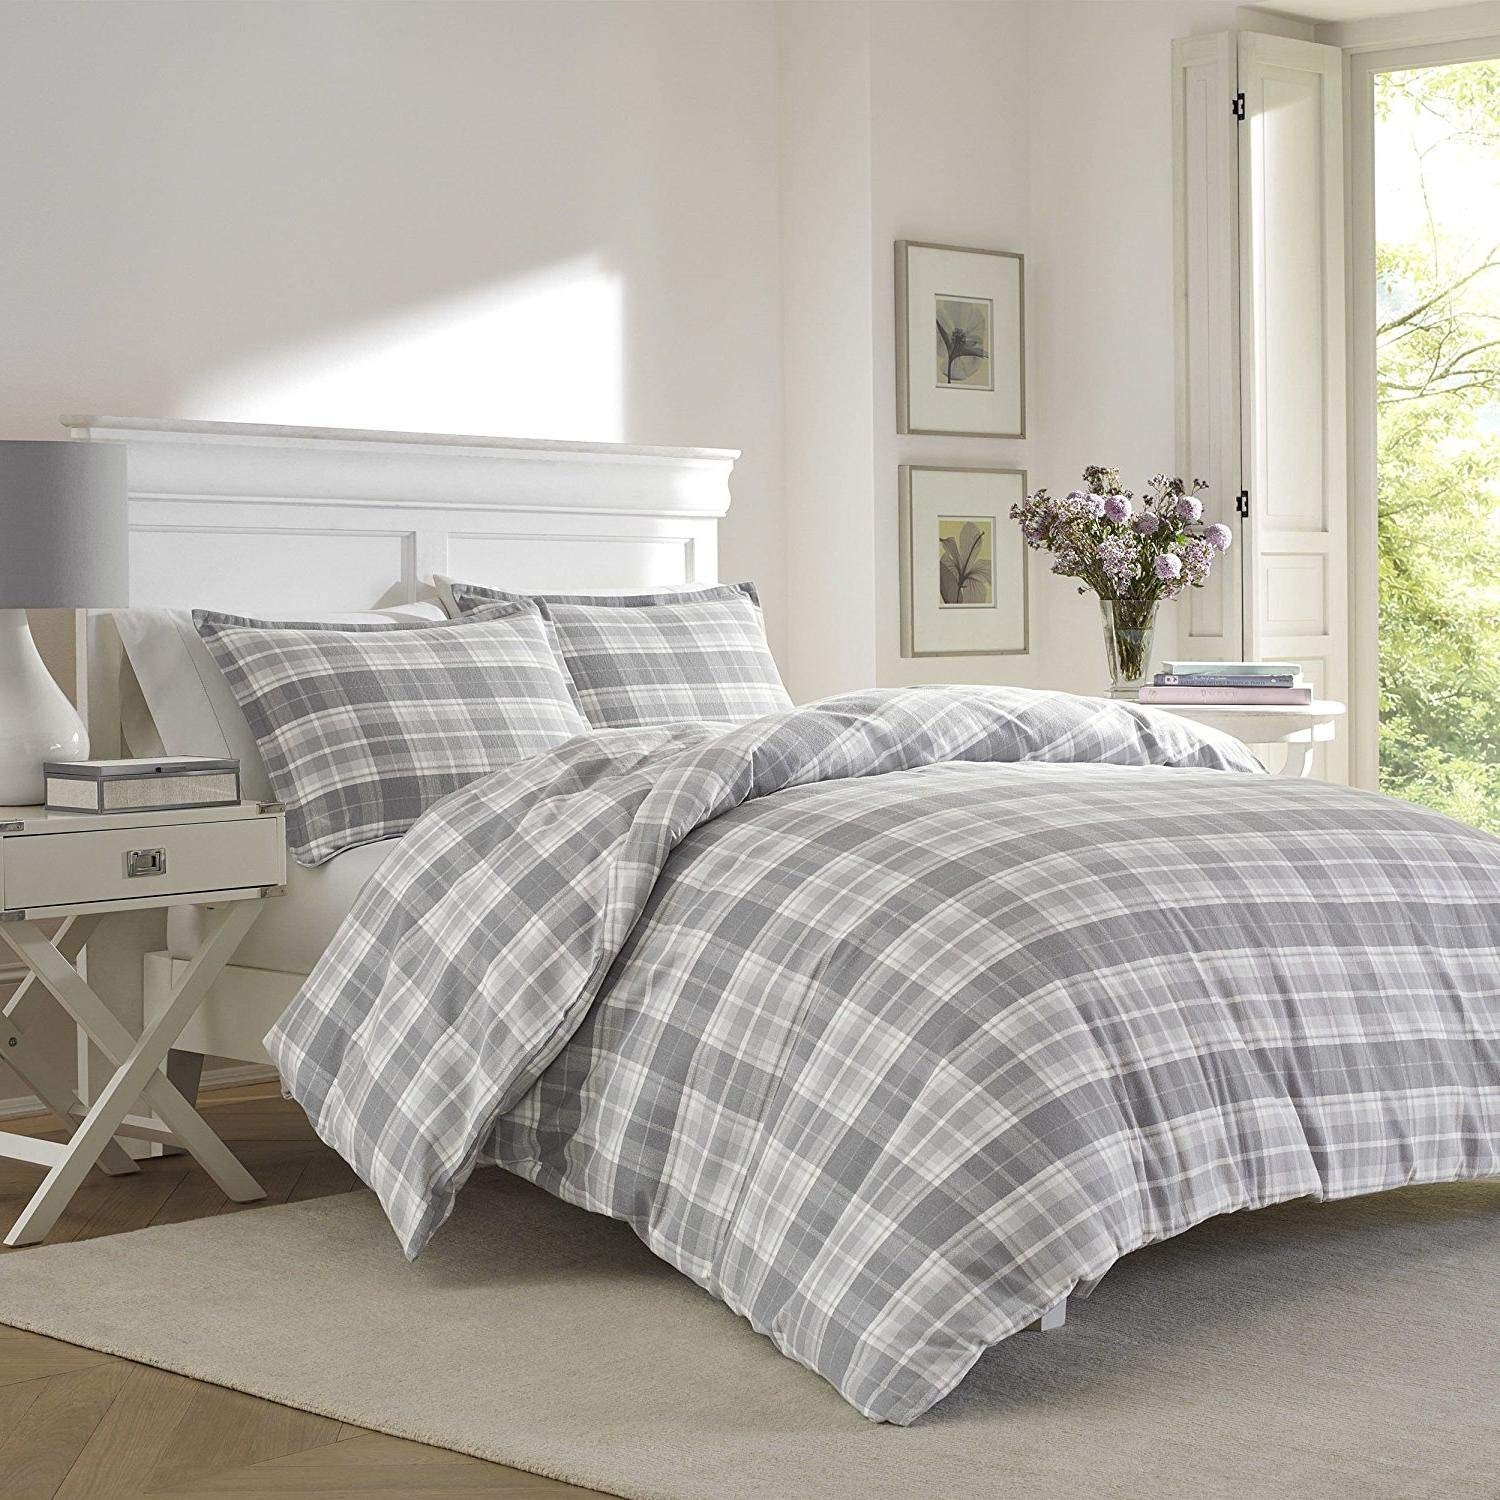 3pc Grey Plaid King Size Duvet Cover Set, Gray Madras Tartan Lumberjack Pattern Cottage Checked, Cotton Flannel, Coastal Lodge Cabin Themed French Country Checkered Bedding